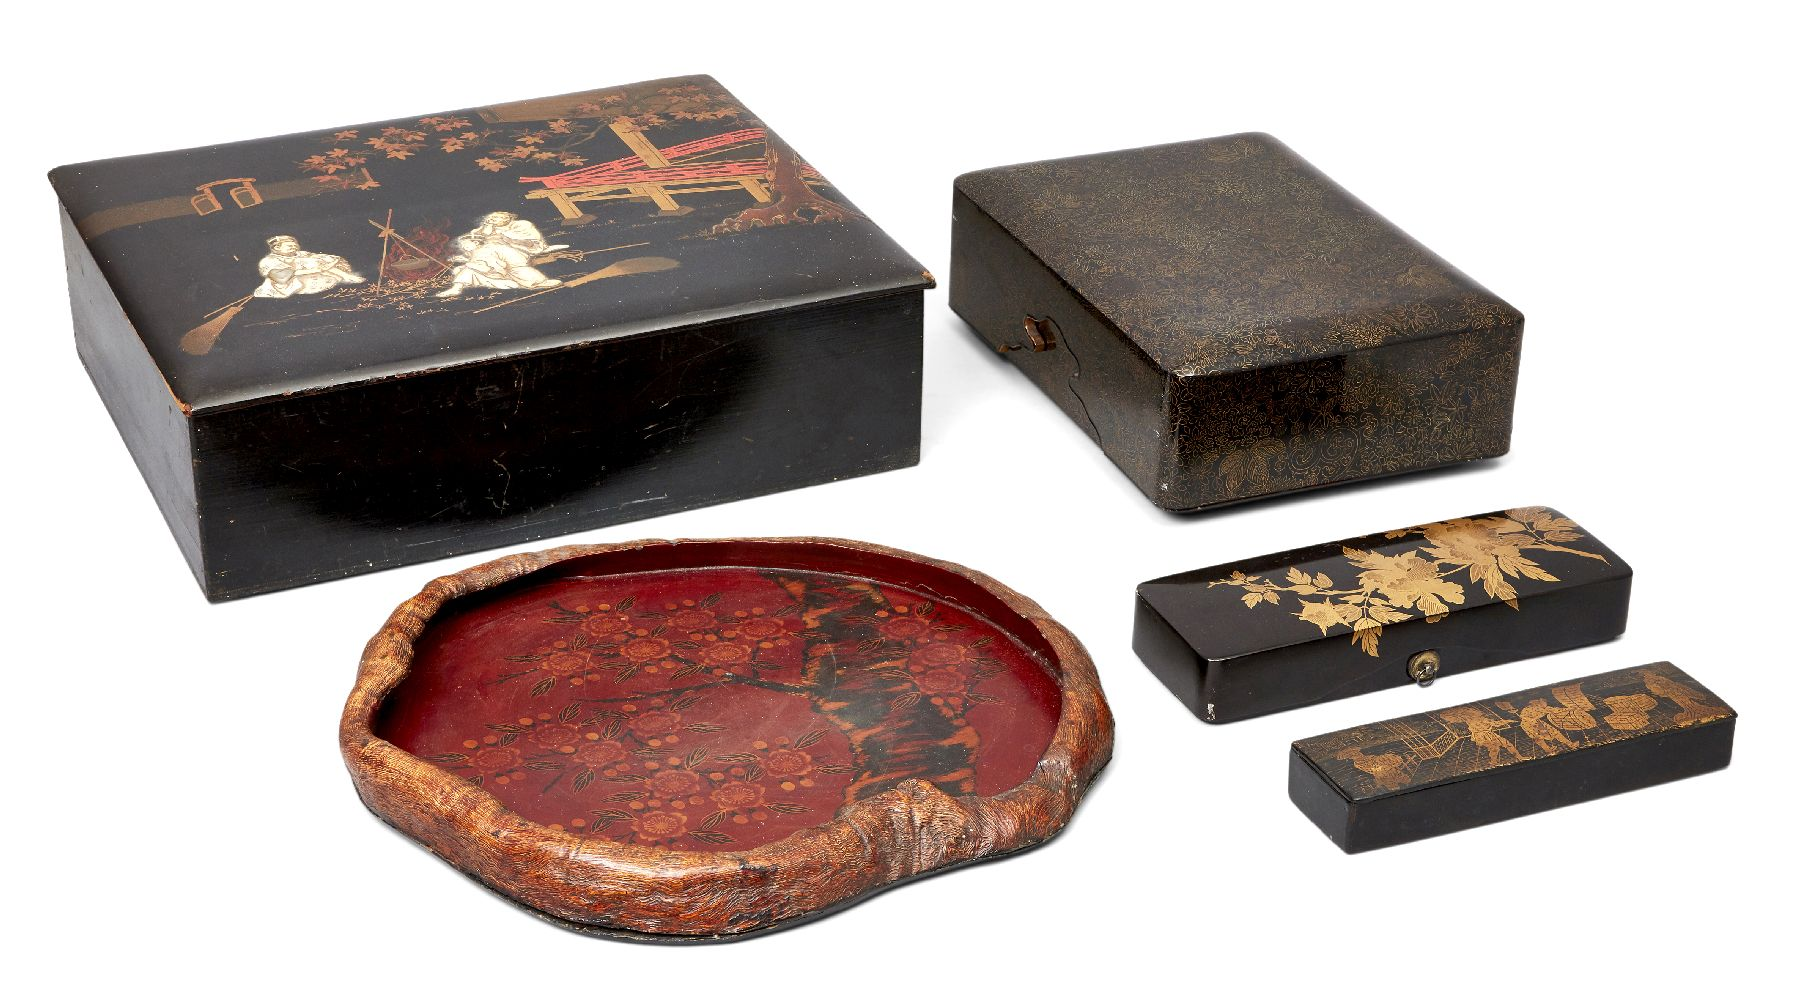 A collection of Japanese lacquer ware, 19th century, to include a large box inlaid with ivory